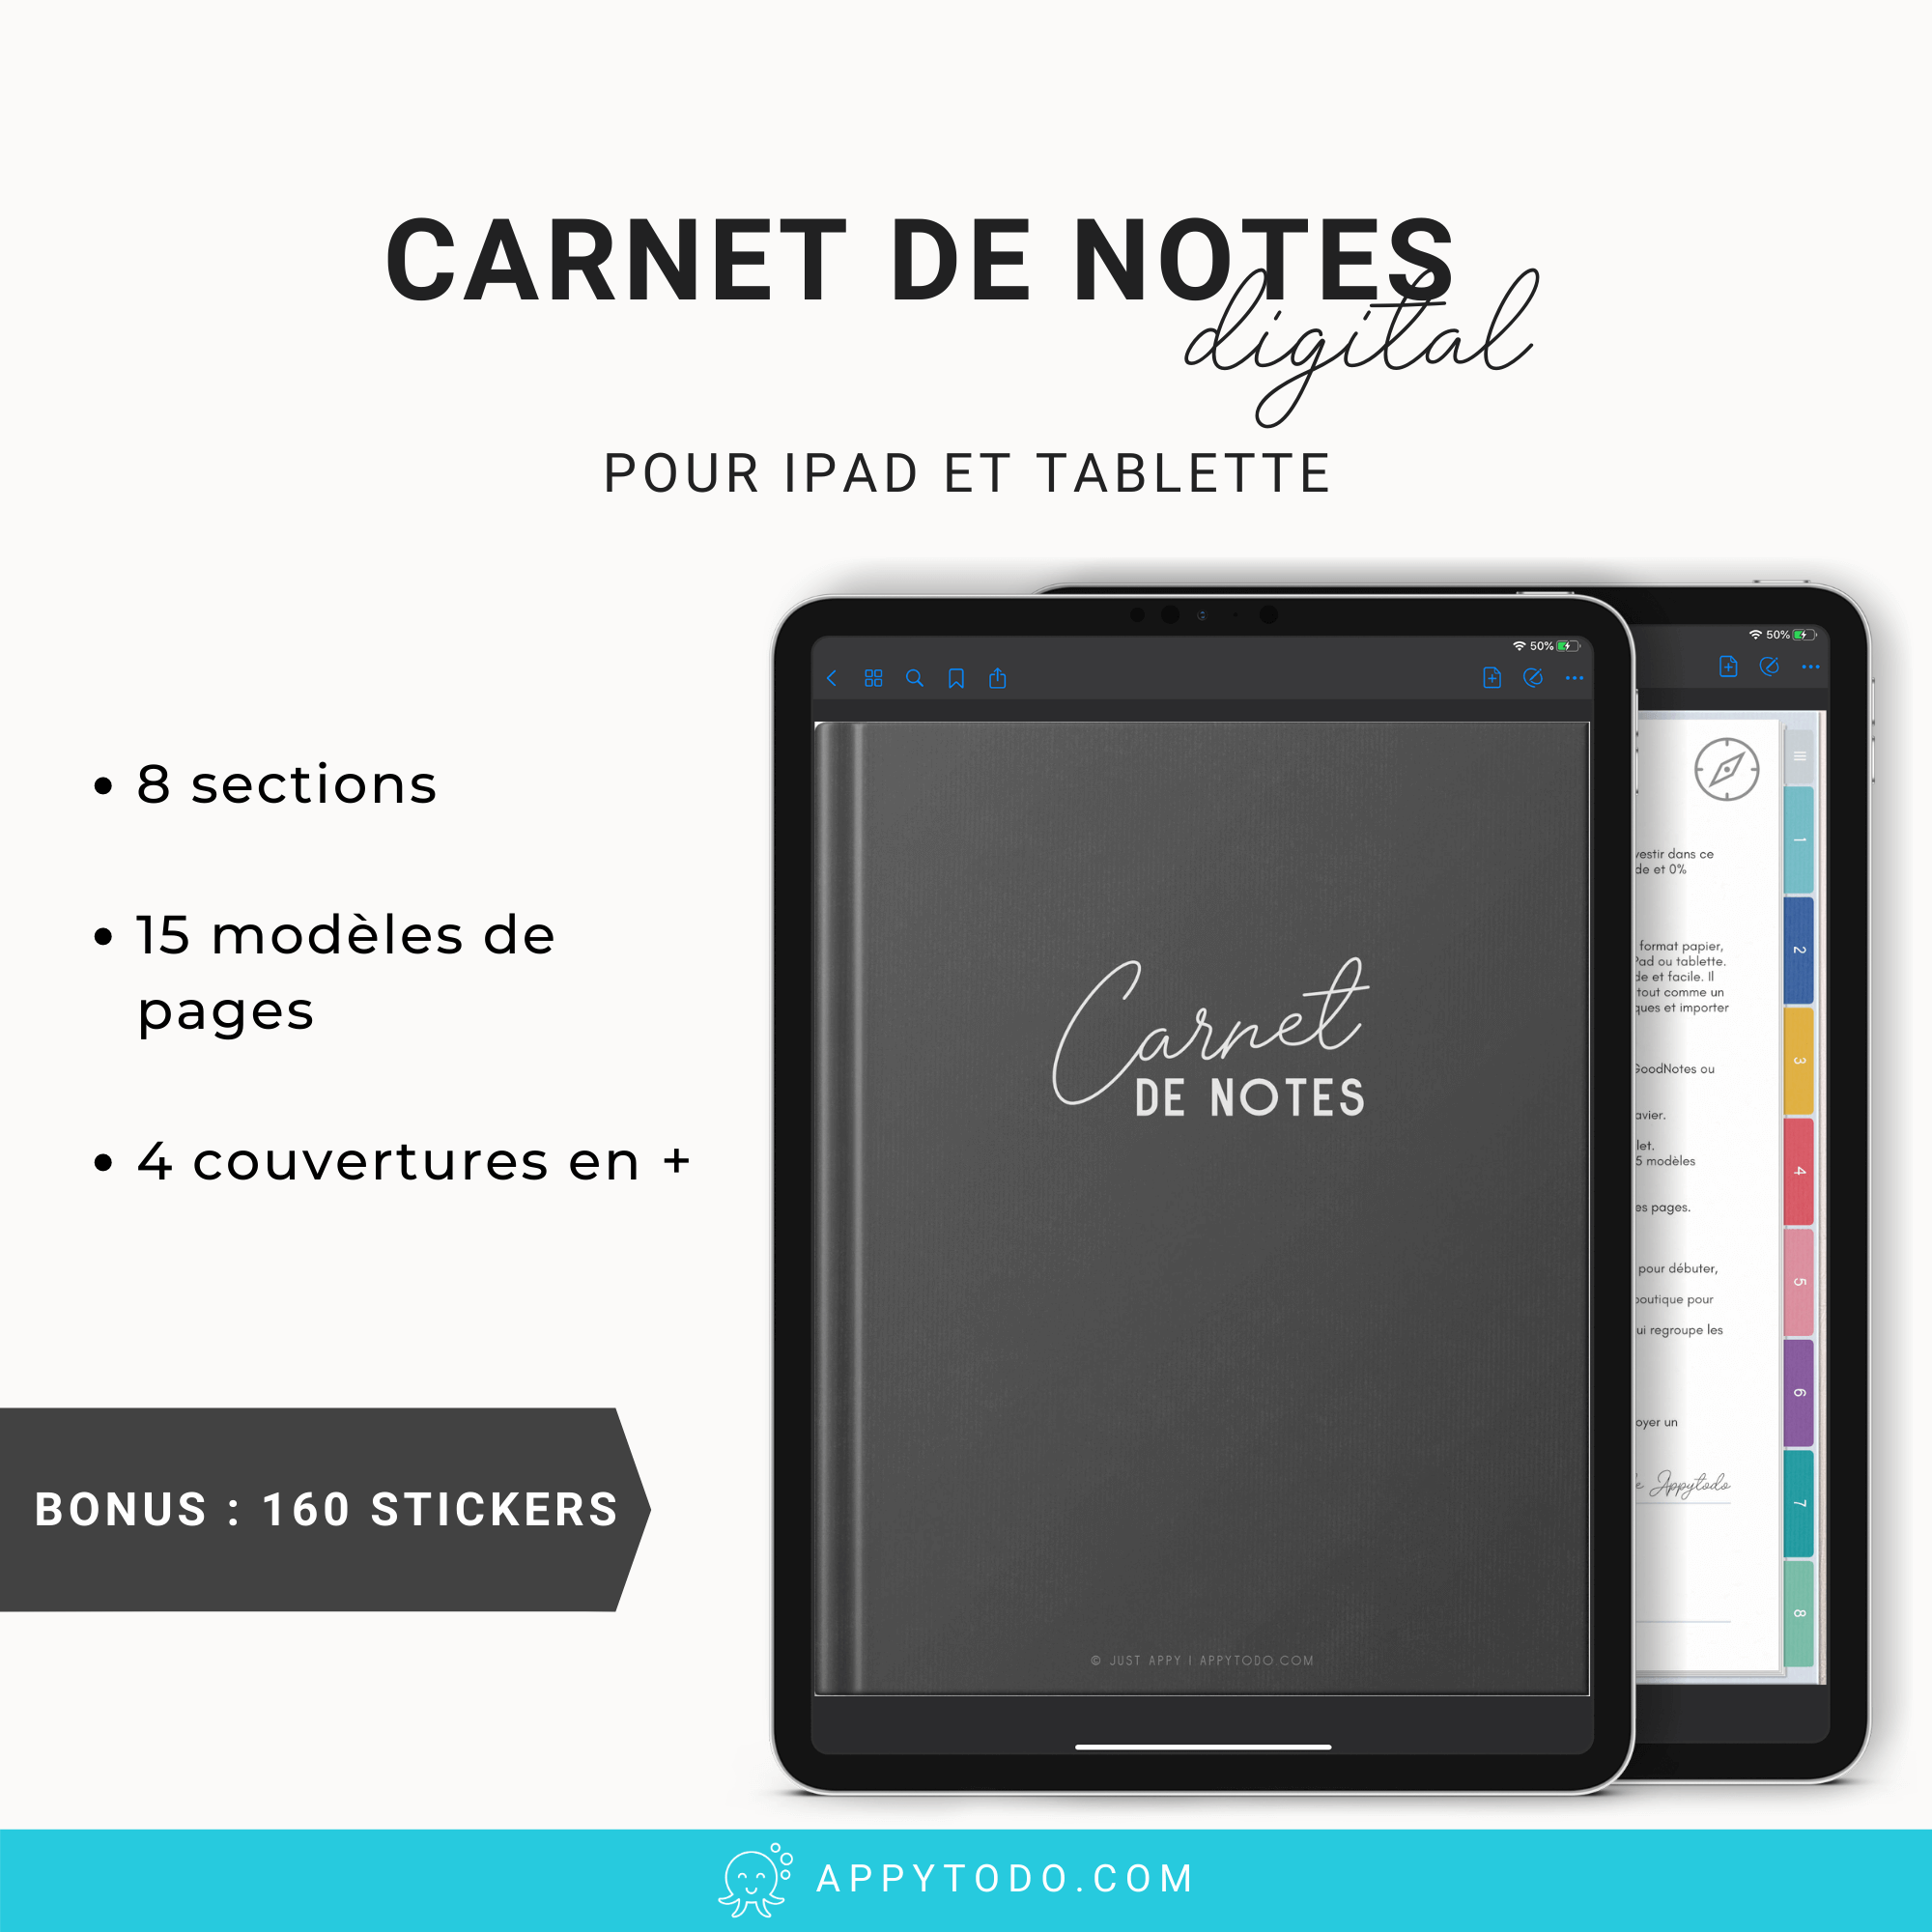 Carnet de notes digital pour Ipad et tablette